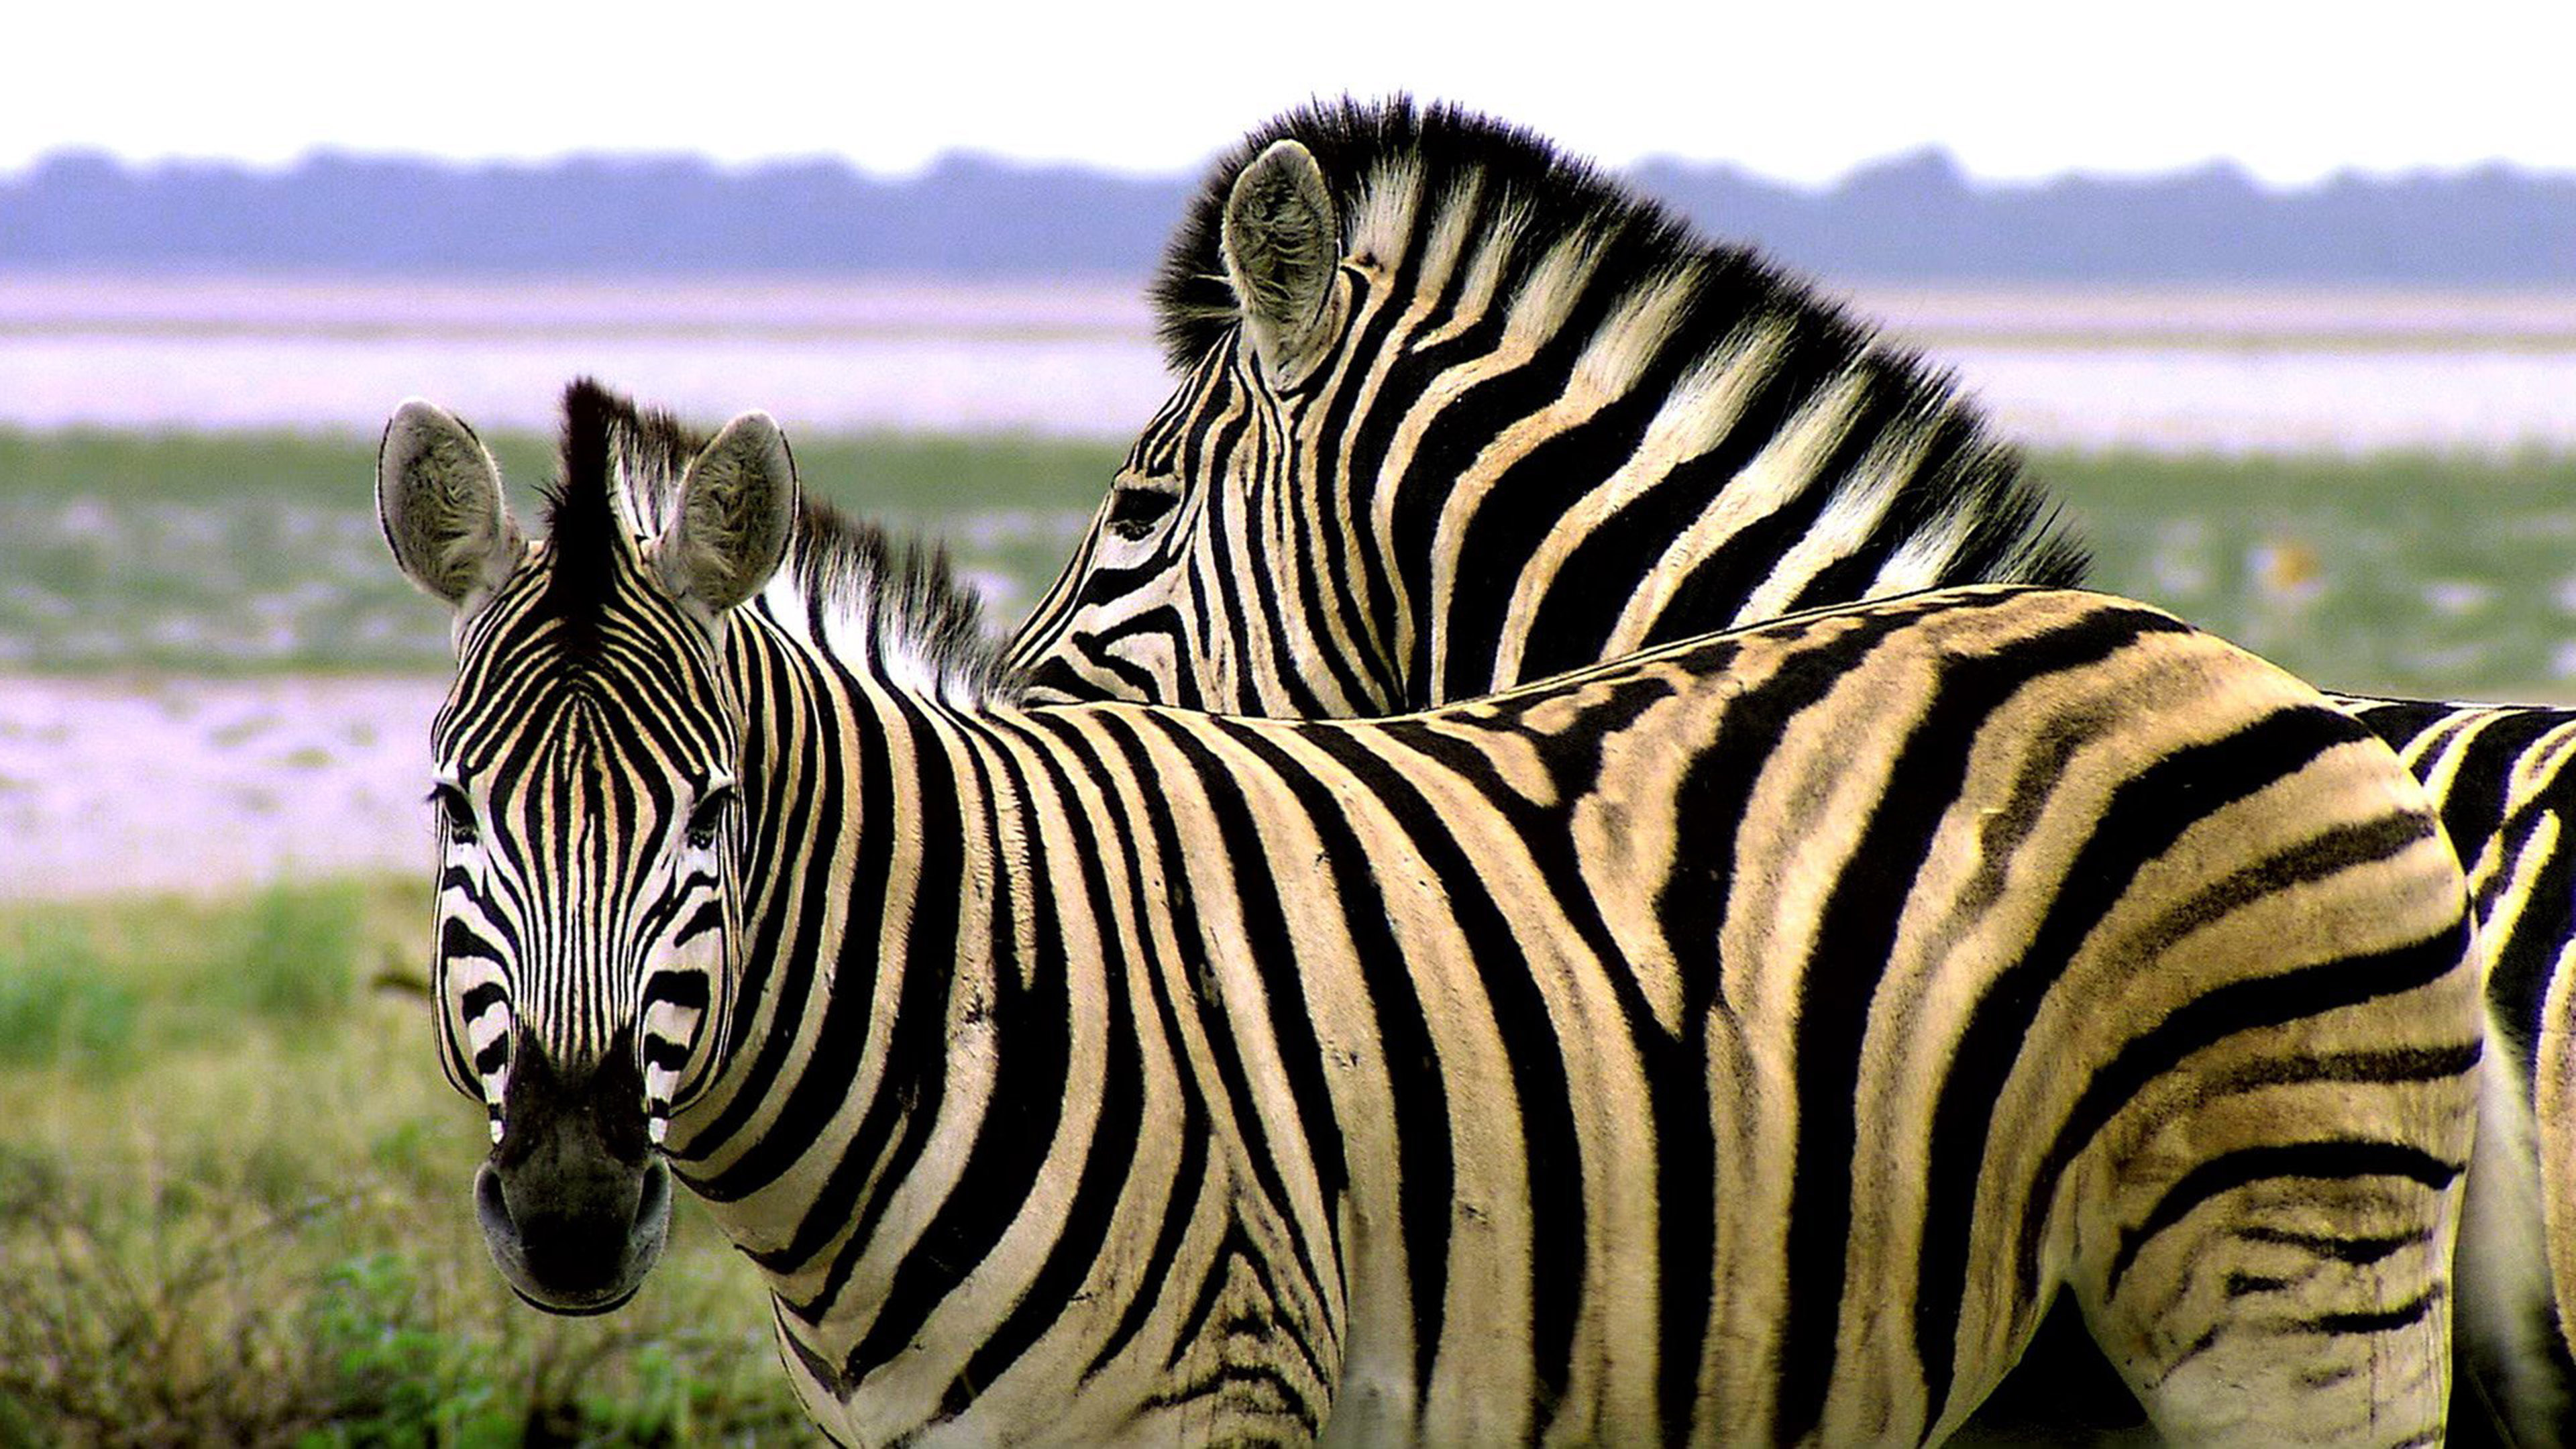 Moving Animation Wallpaper For Desktop Animals Of Africa Zebra Striped Like A Tiger Hd Wallpaper